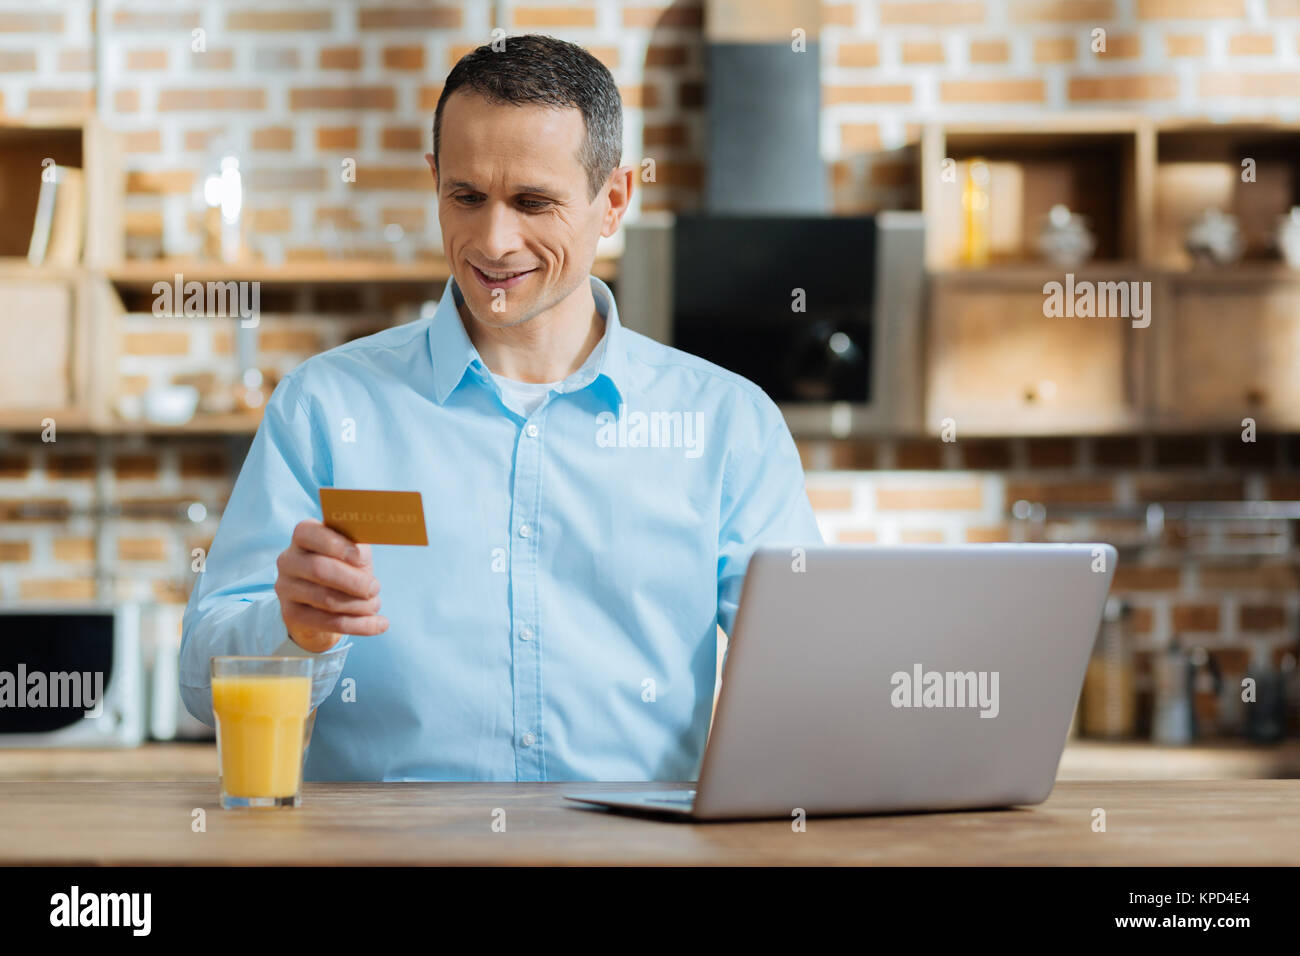 Attentive modern male that looking at his card - Stock Image